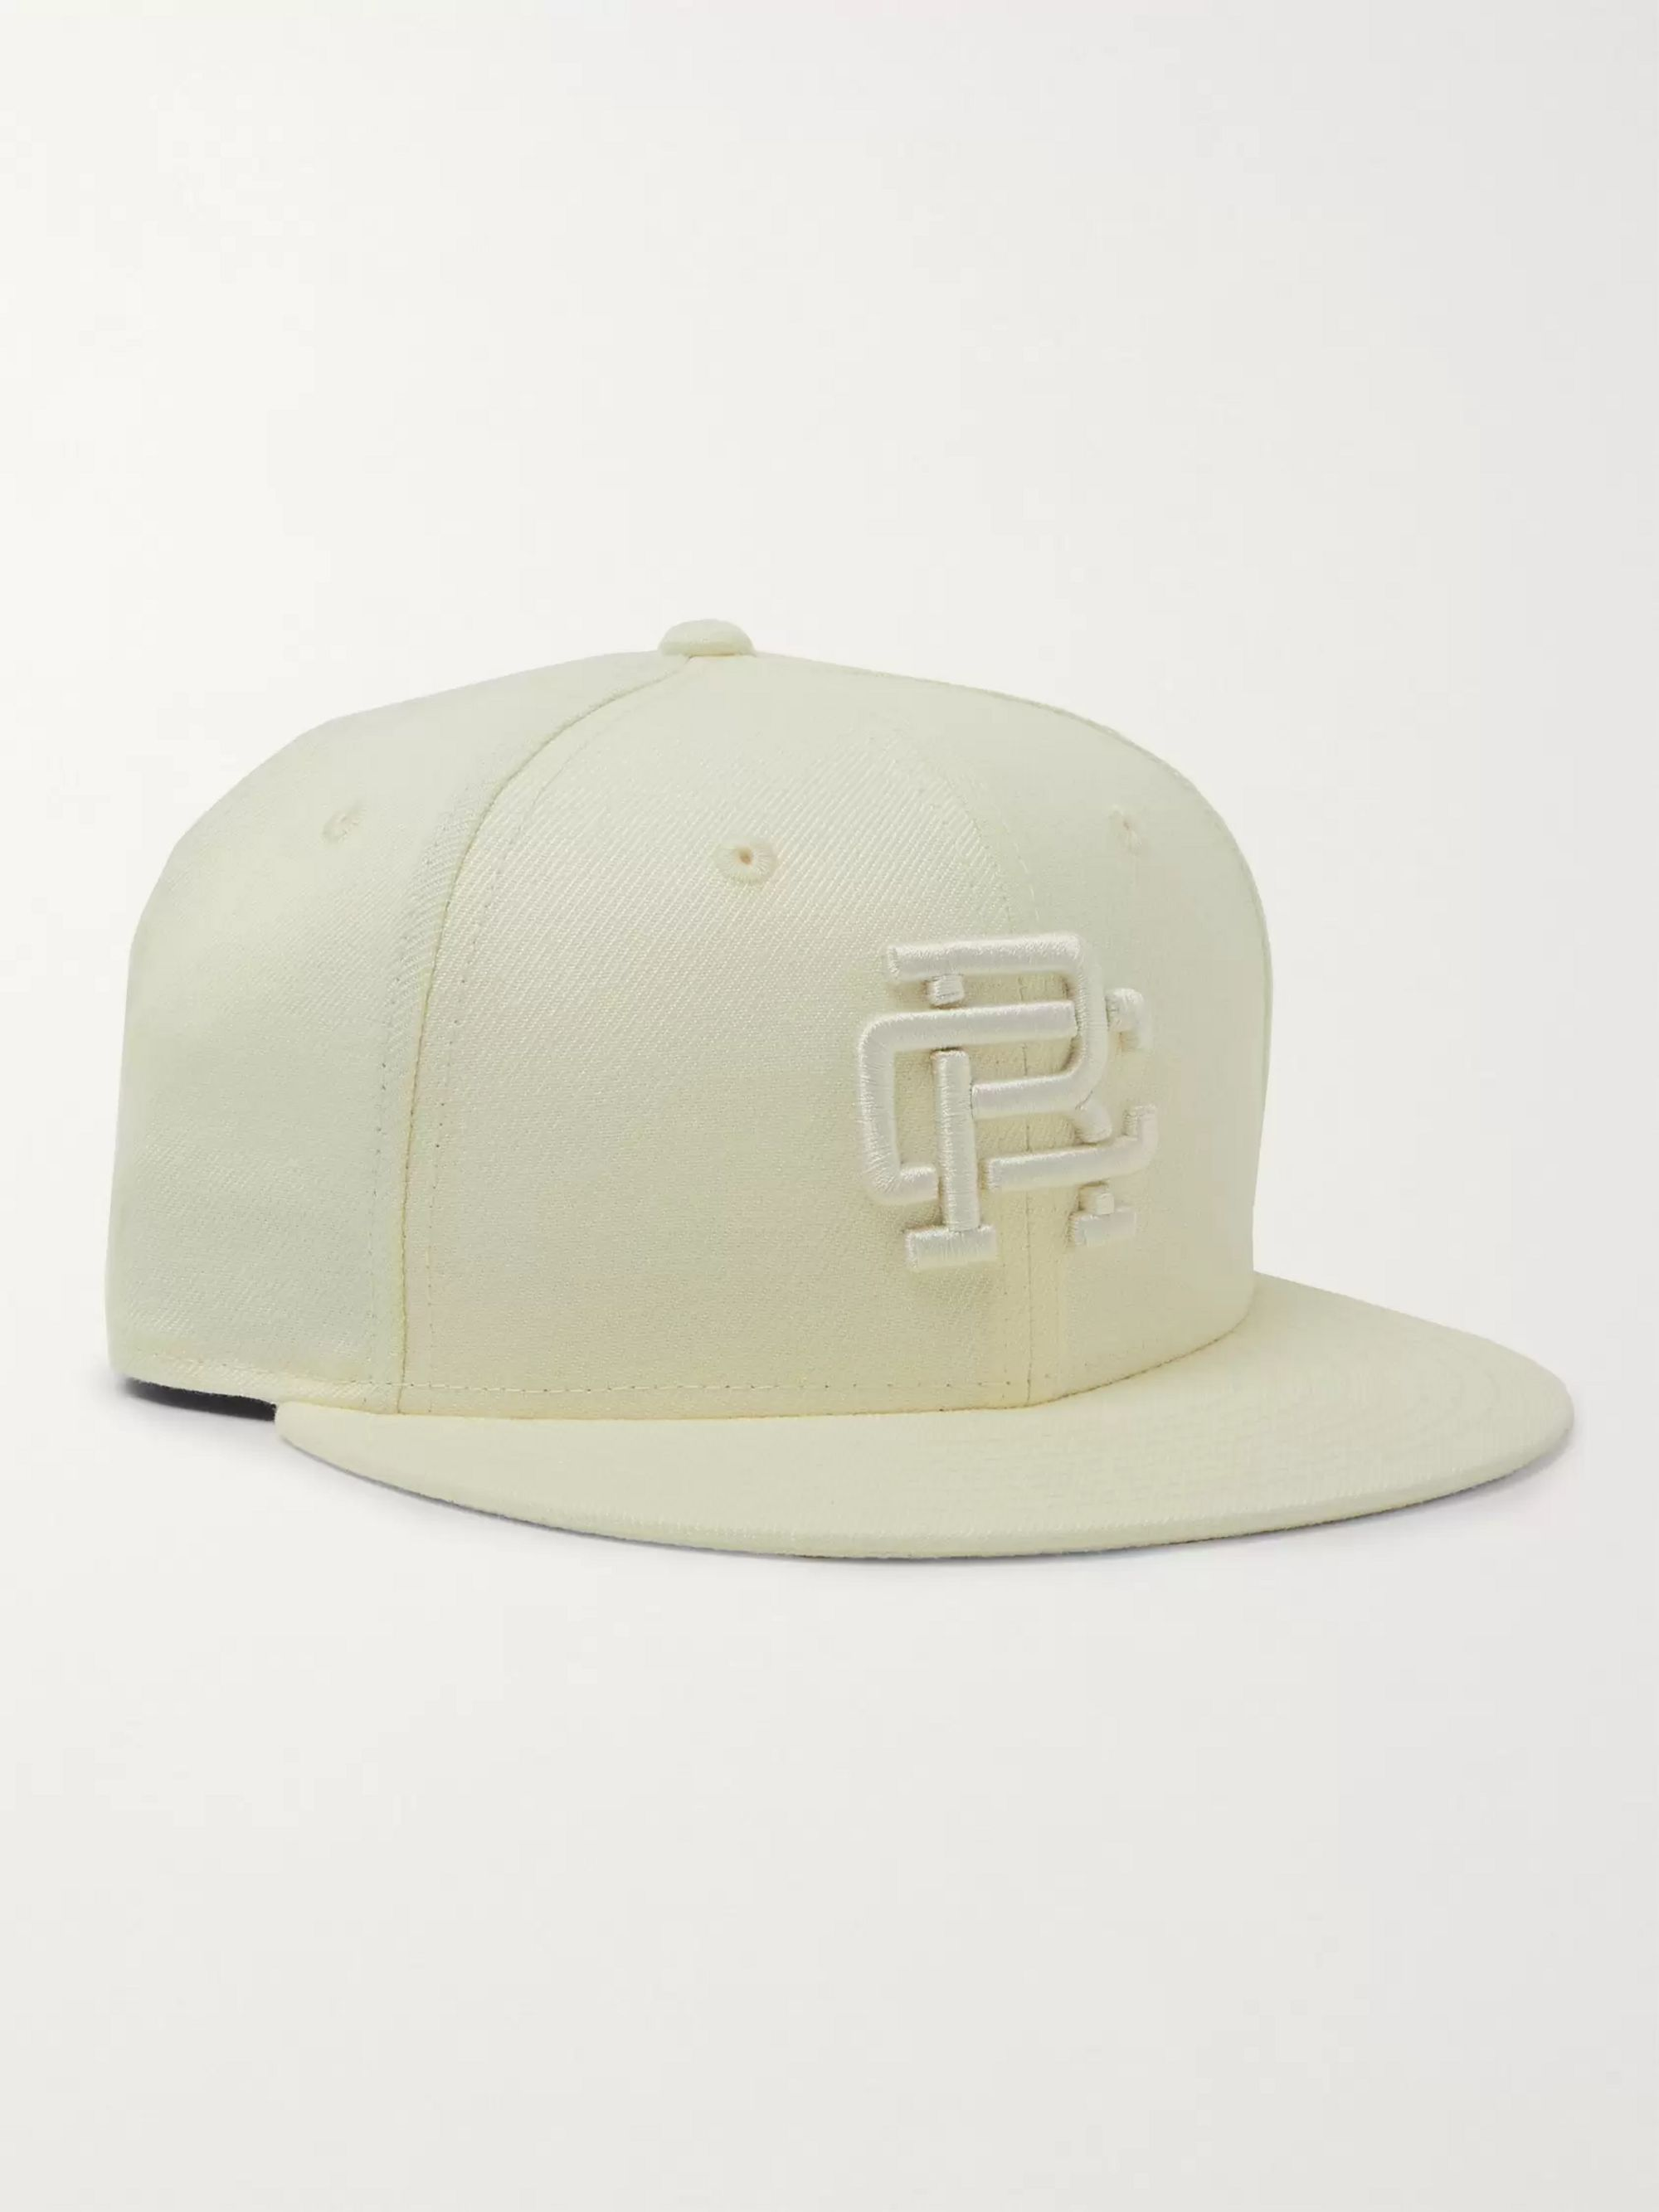 Reigning Champ + New Era 59FIFTY Logo-Embroidered Twill Baseball Cap